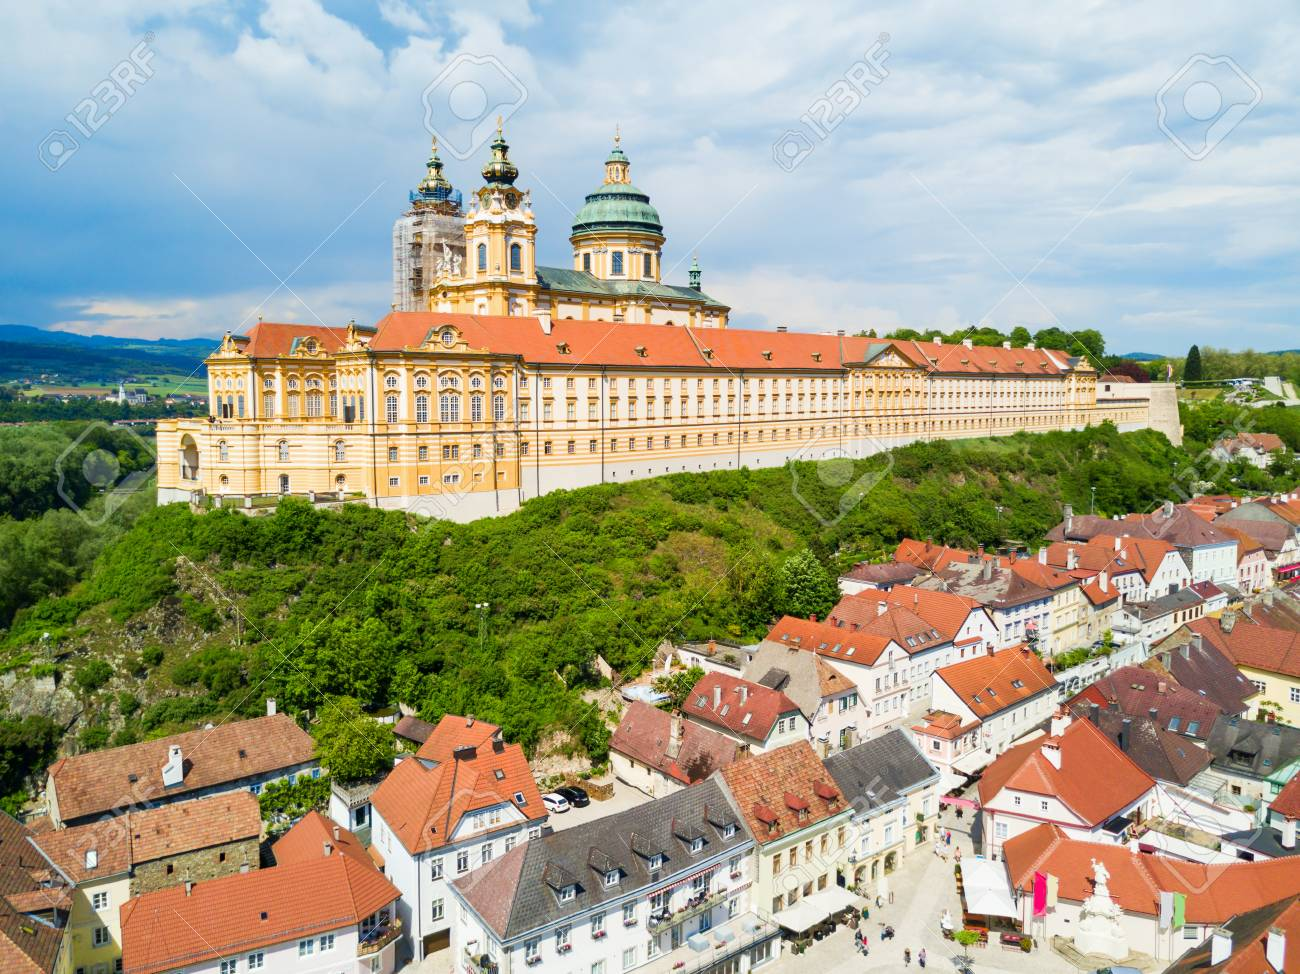 Melk Abbey Monastery aerial panoramic view. Stift Melk is a Benedictine abbey in Melk, Austria. Monastery located on a rocky outcrop overlooking the Danube river and Wachau valley. - 92681959